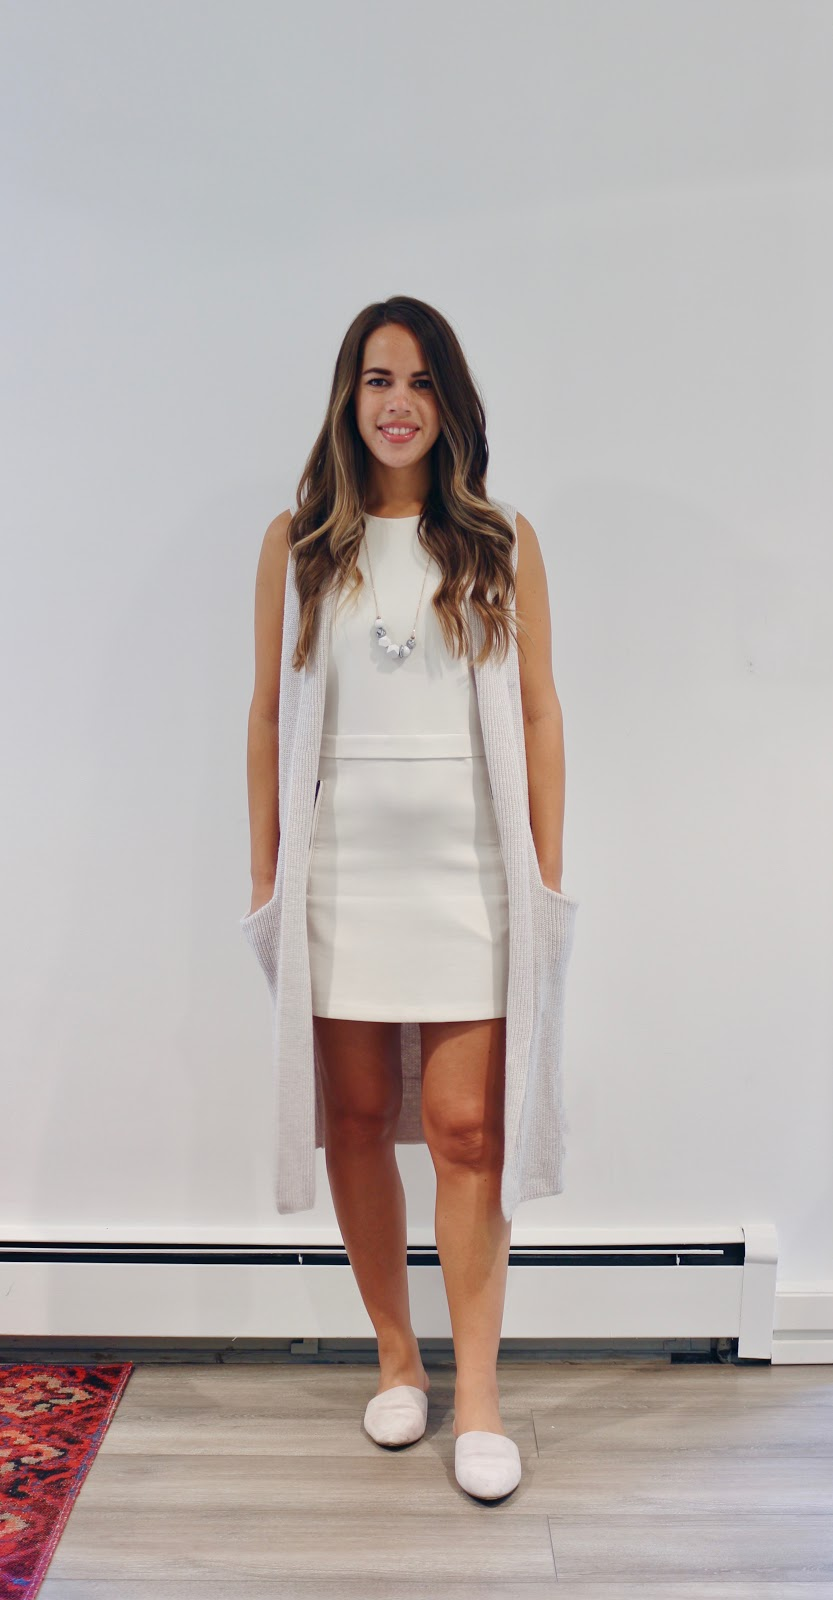 Jules in Flats -  White Shift Dress with Sleeveless Knit Vest (Business Casual Summer Workwear on a Budget)